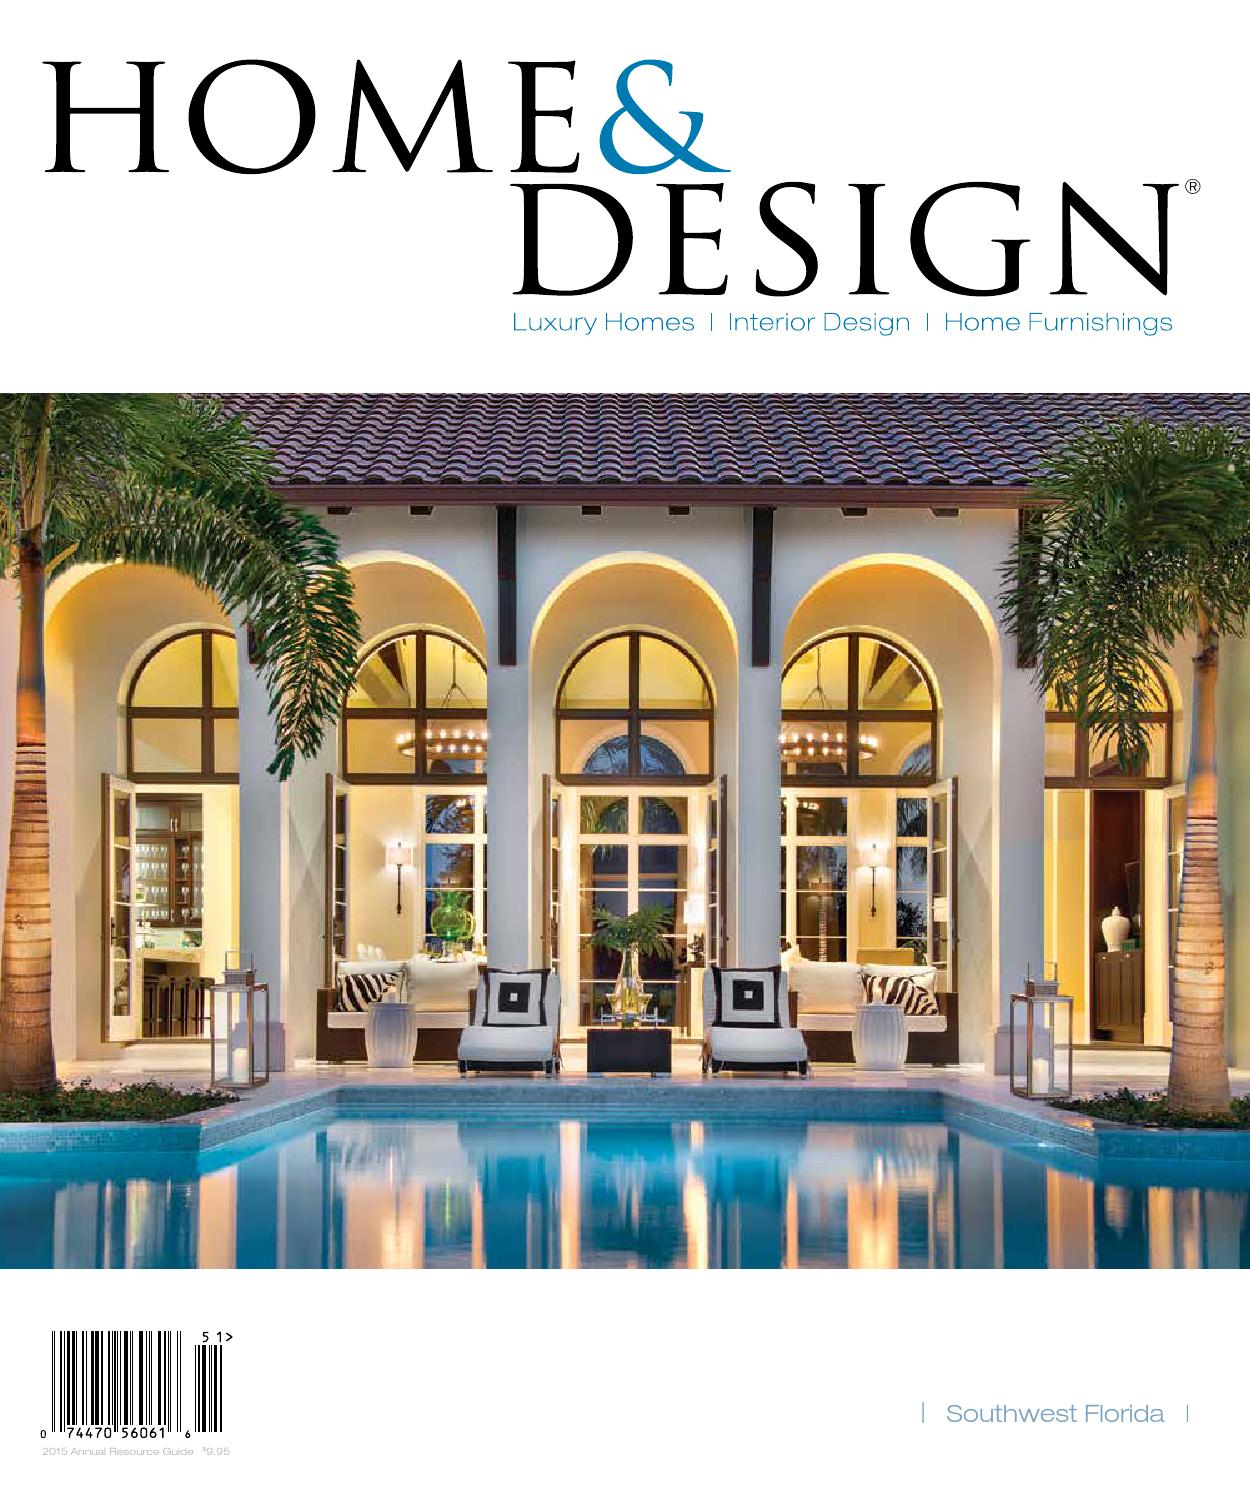 Home Design Magazine home & design magazine | annual resource guide 2015 | southwest